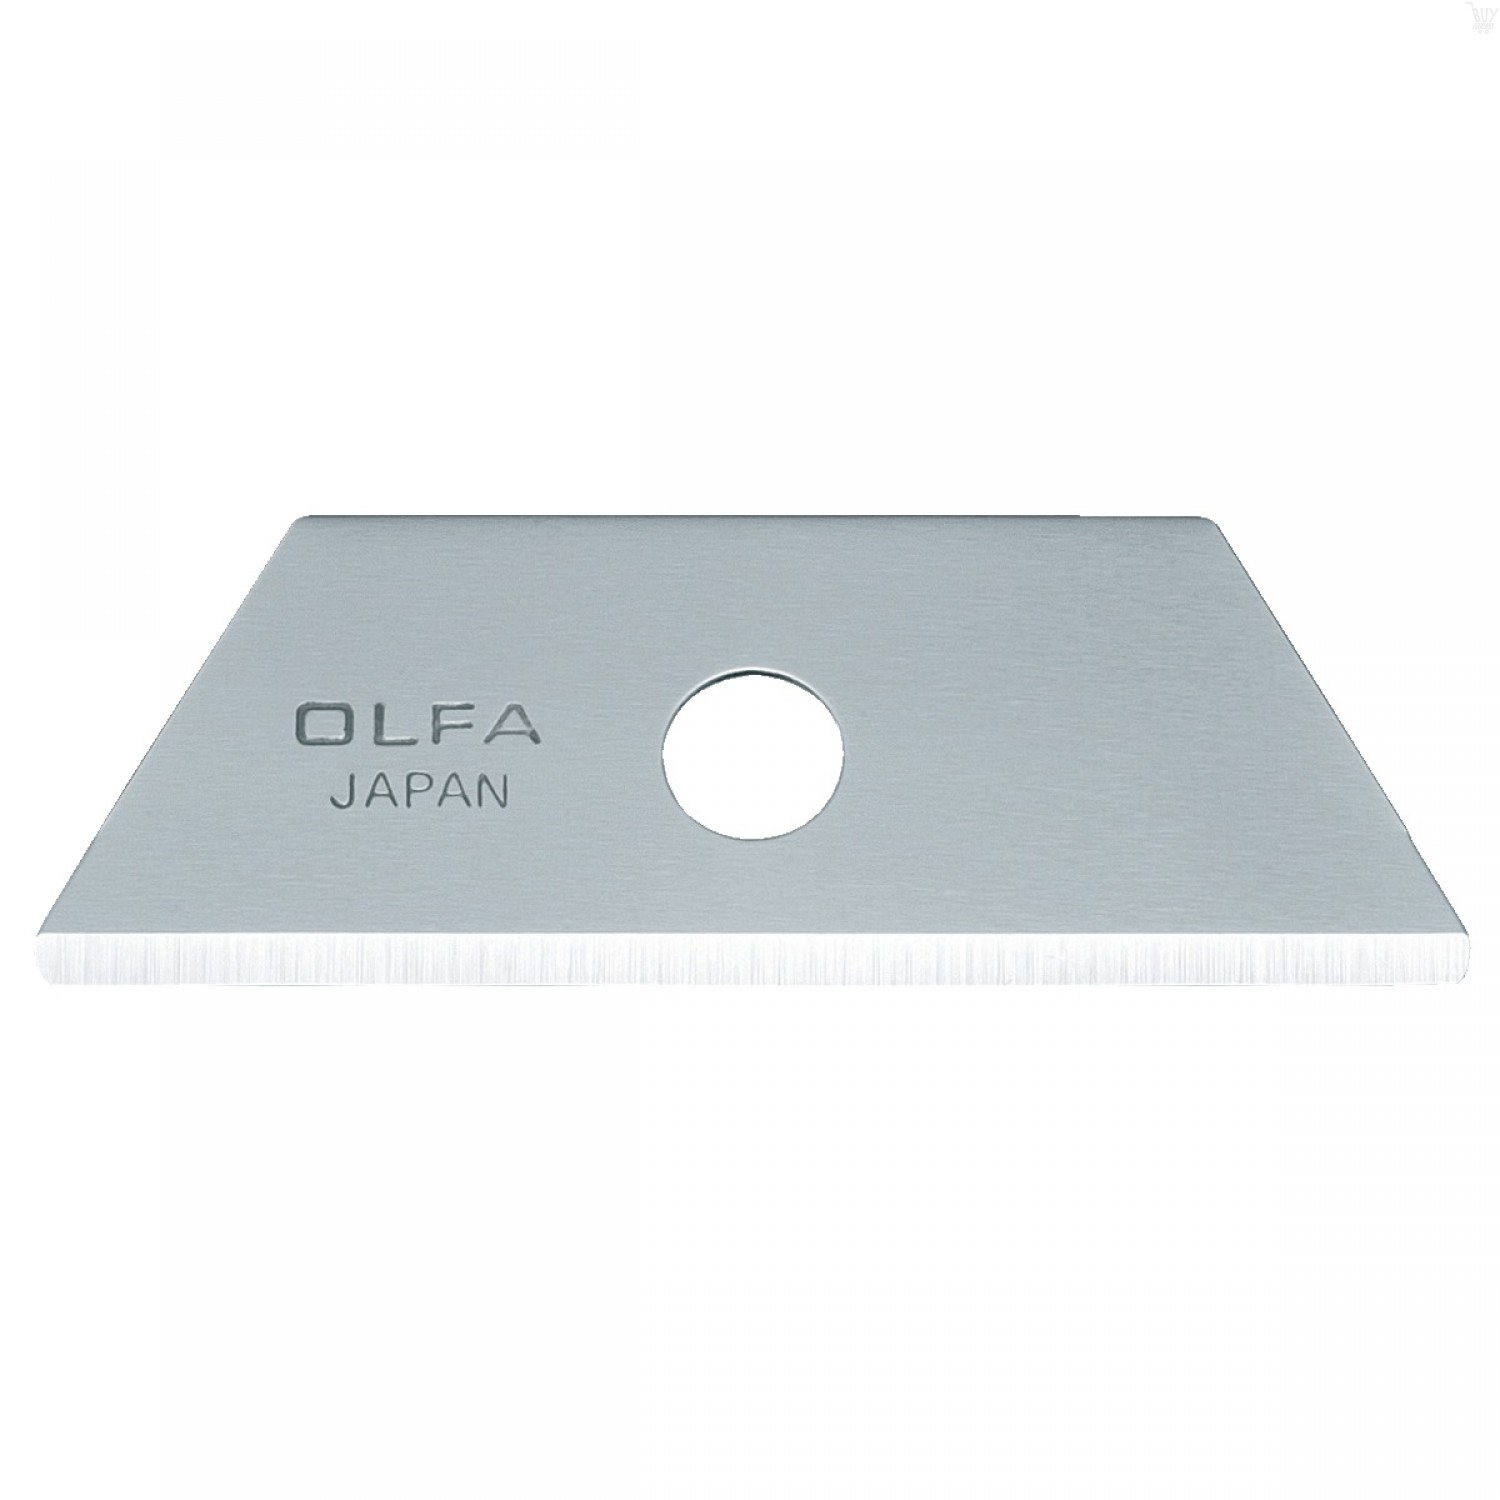 OLFA RSKB-2/10B Rounded Tip Dual-Edge Safety Blades (10/PACK)